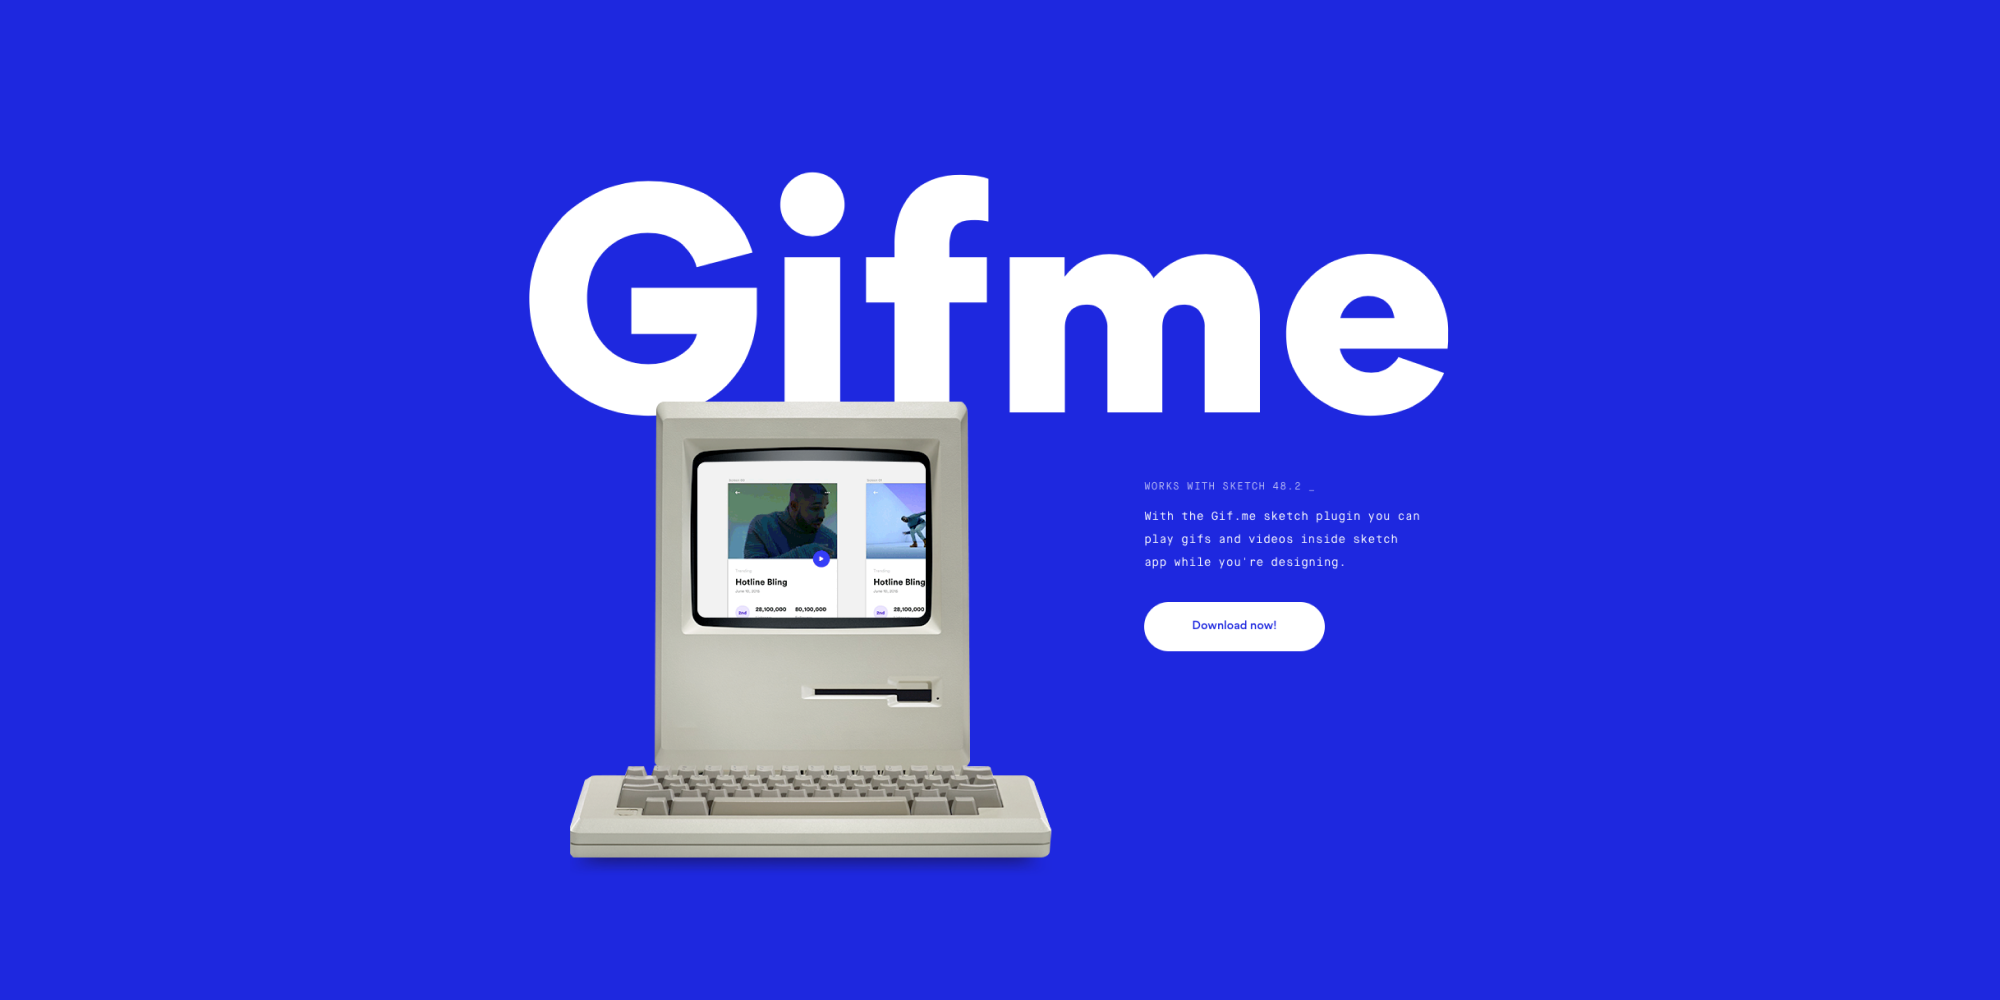 Gif me hero image with retro computer and screenshot showing GIFs in action in Sketch